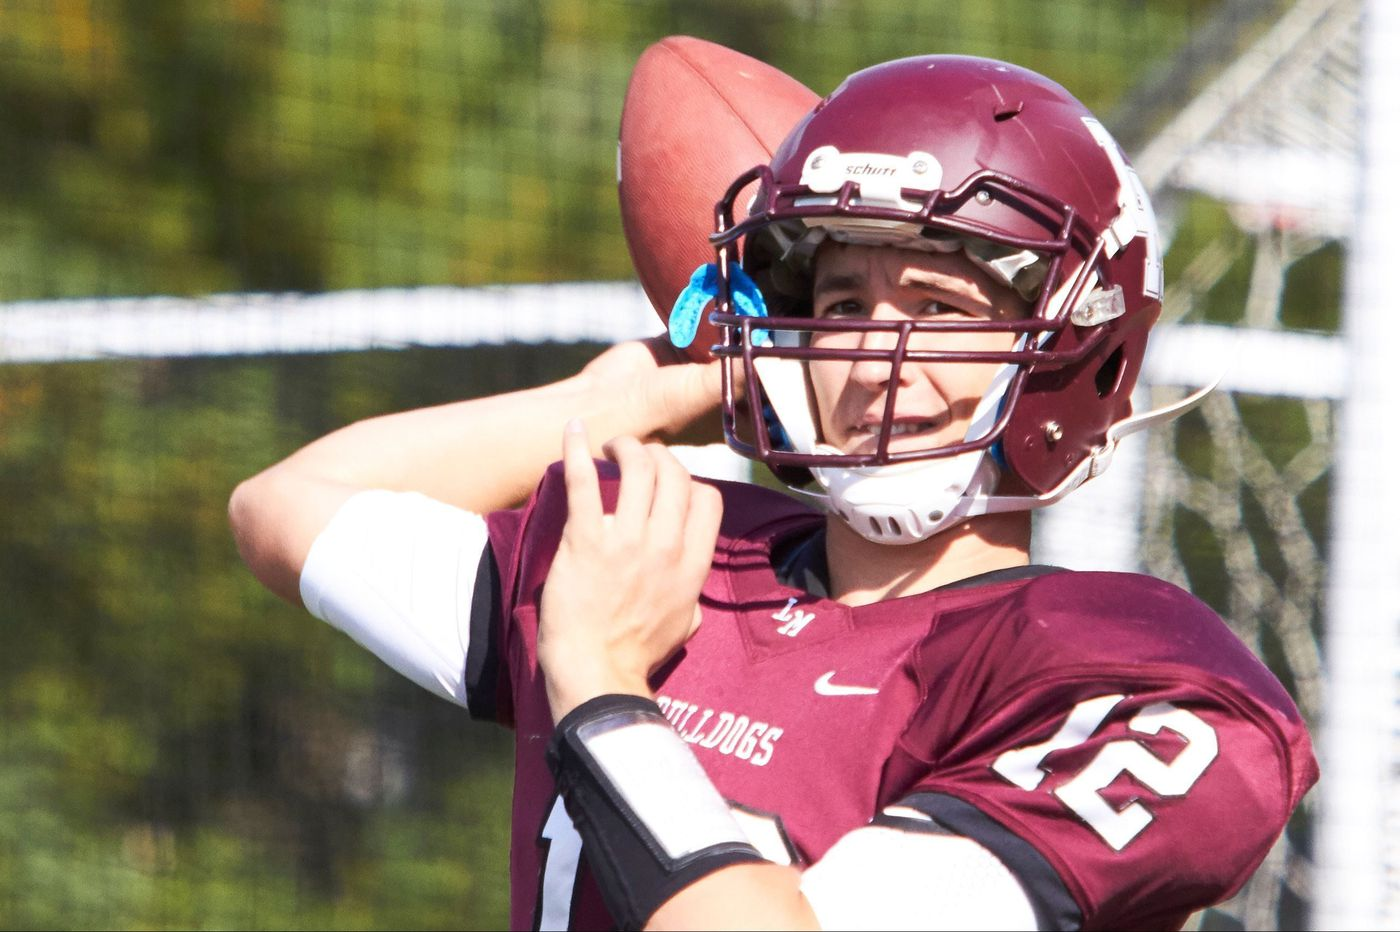 Matt O'Connor passes his way into Lower Merion football record book